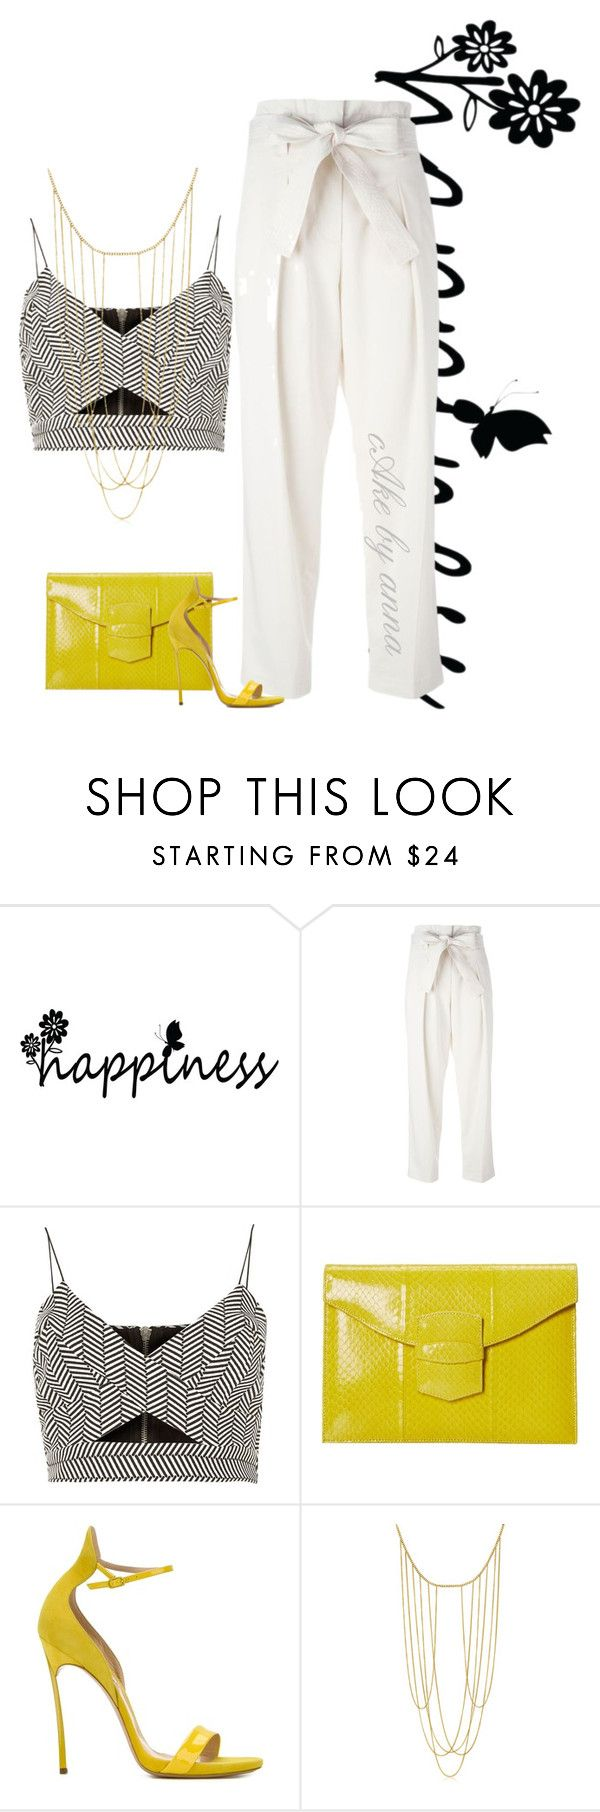 """""""cake by anna"""" by mzchunkylover310 ❤ liked on Polyvore featuring 3.1 Phillip Lim, River Island, Oscar de la Renta and Casadei"""